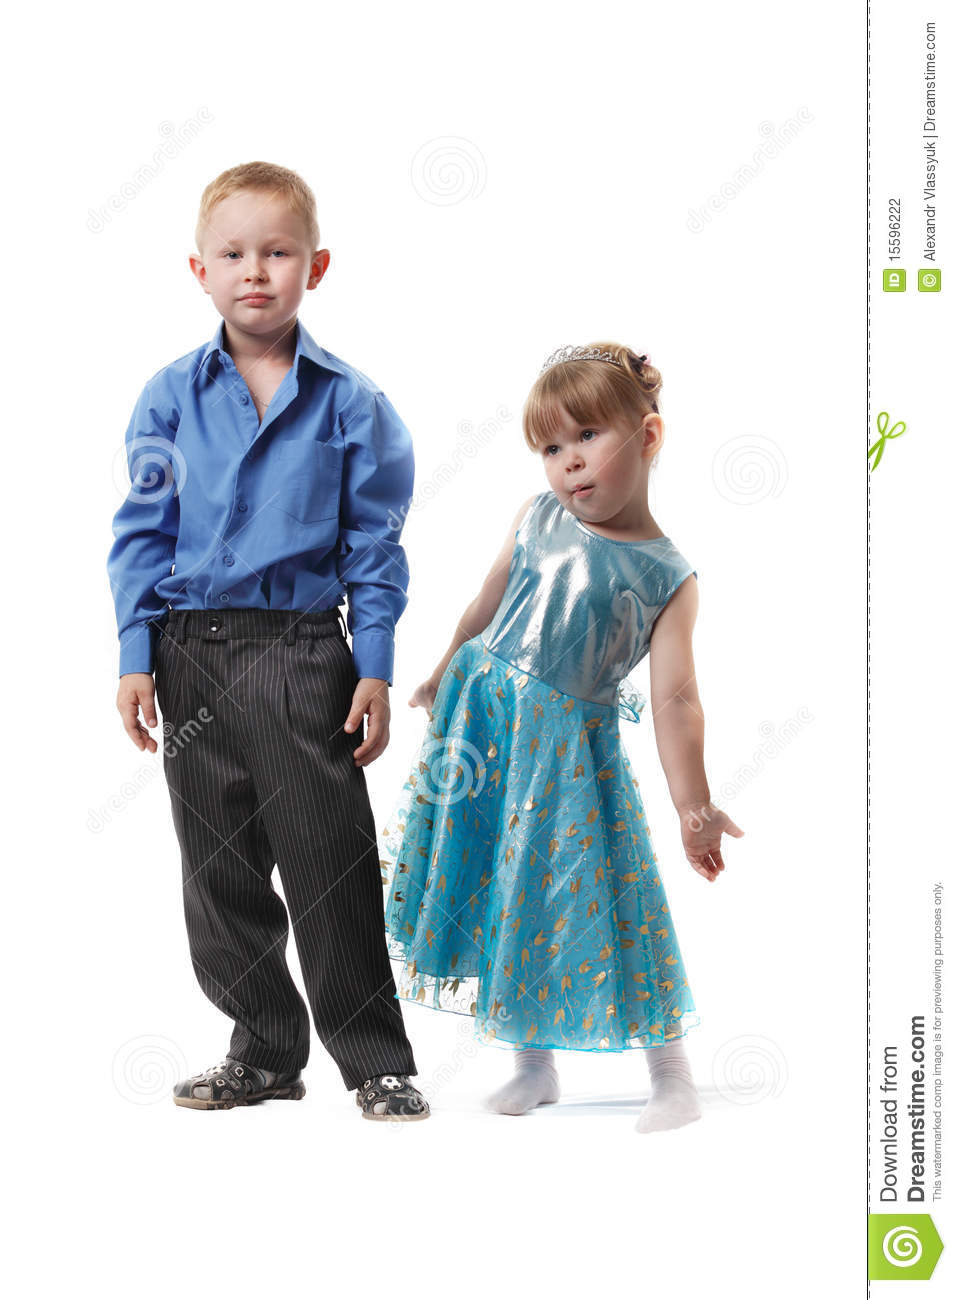 Boy And Girl In Formal Dress Stock Photo - Image of shirt, stand